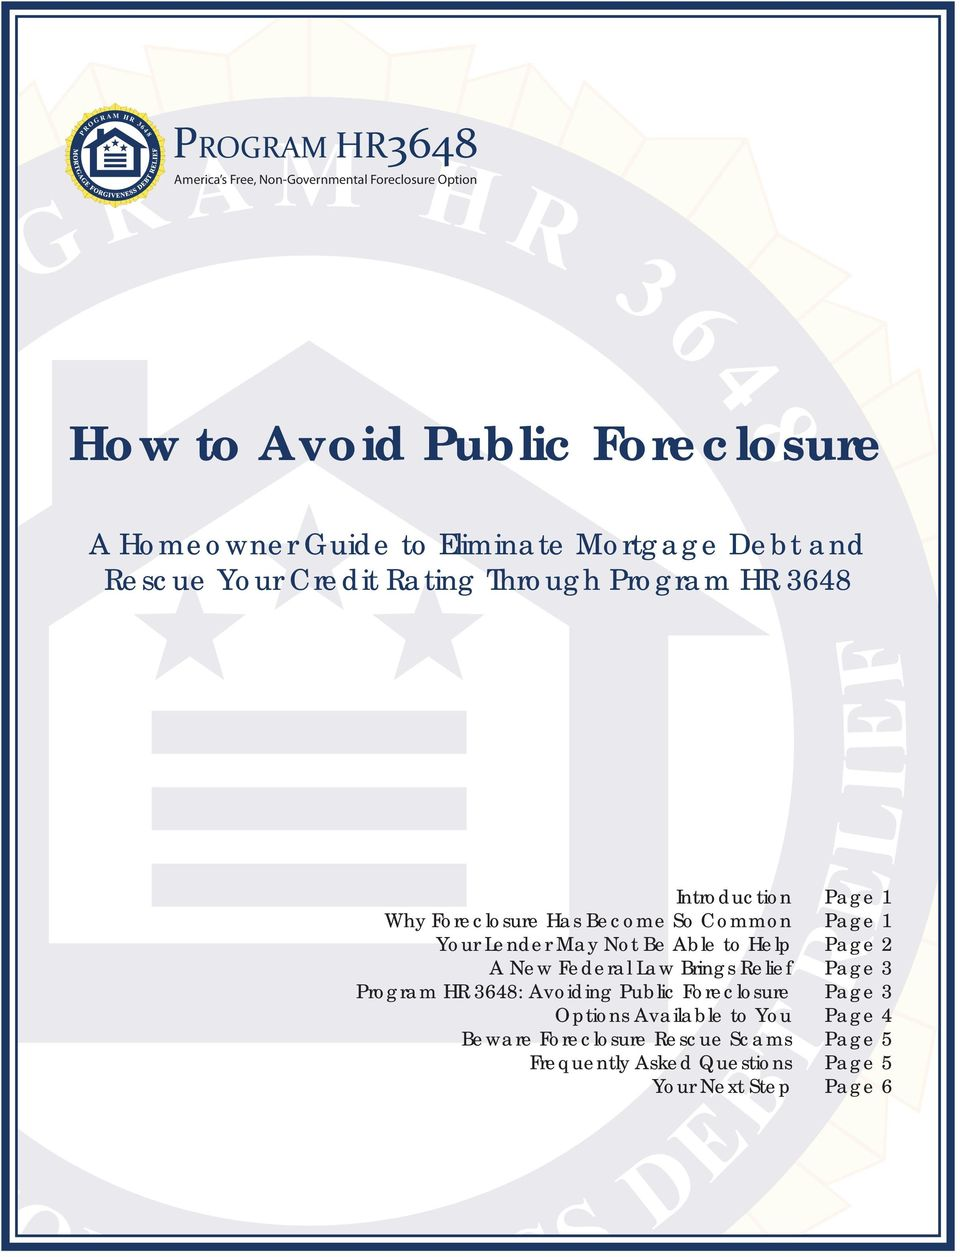 Your Lender May Not Be Able to Help A New Federal Law Brings Relief Program HR 3648: Avoiding Public Foreclosure Options Available to